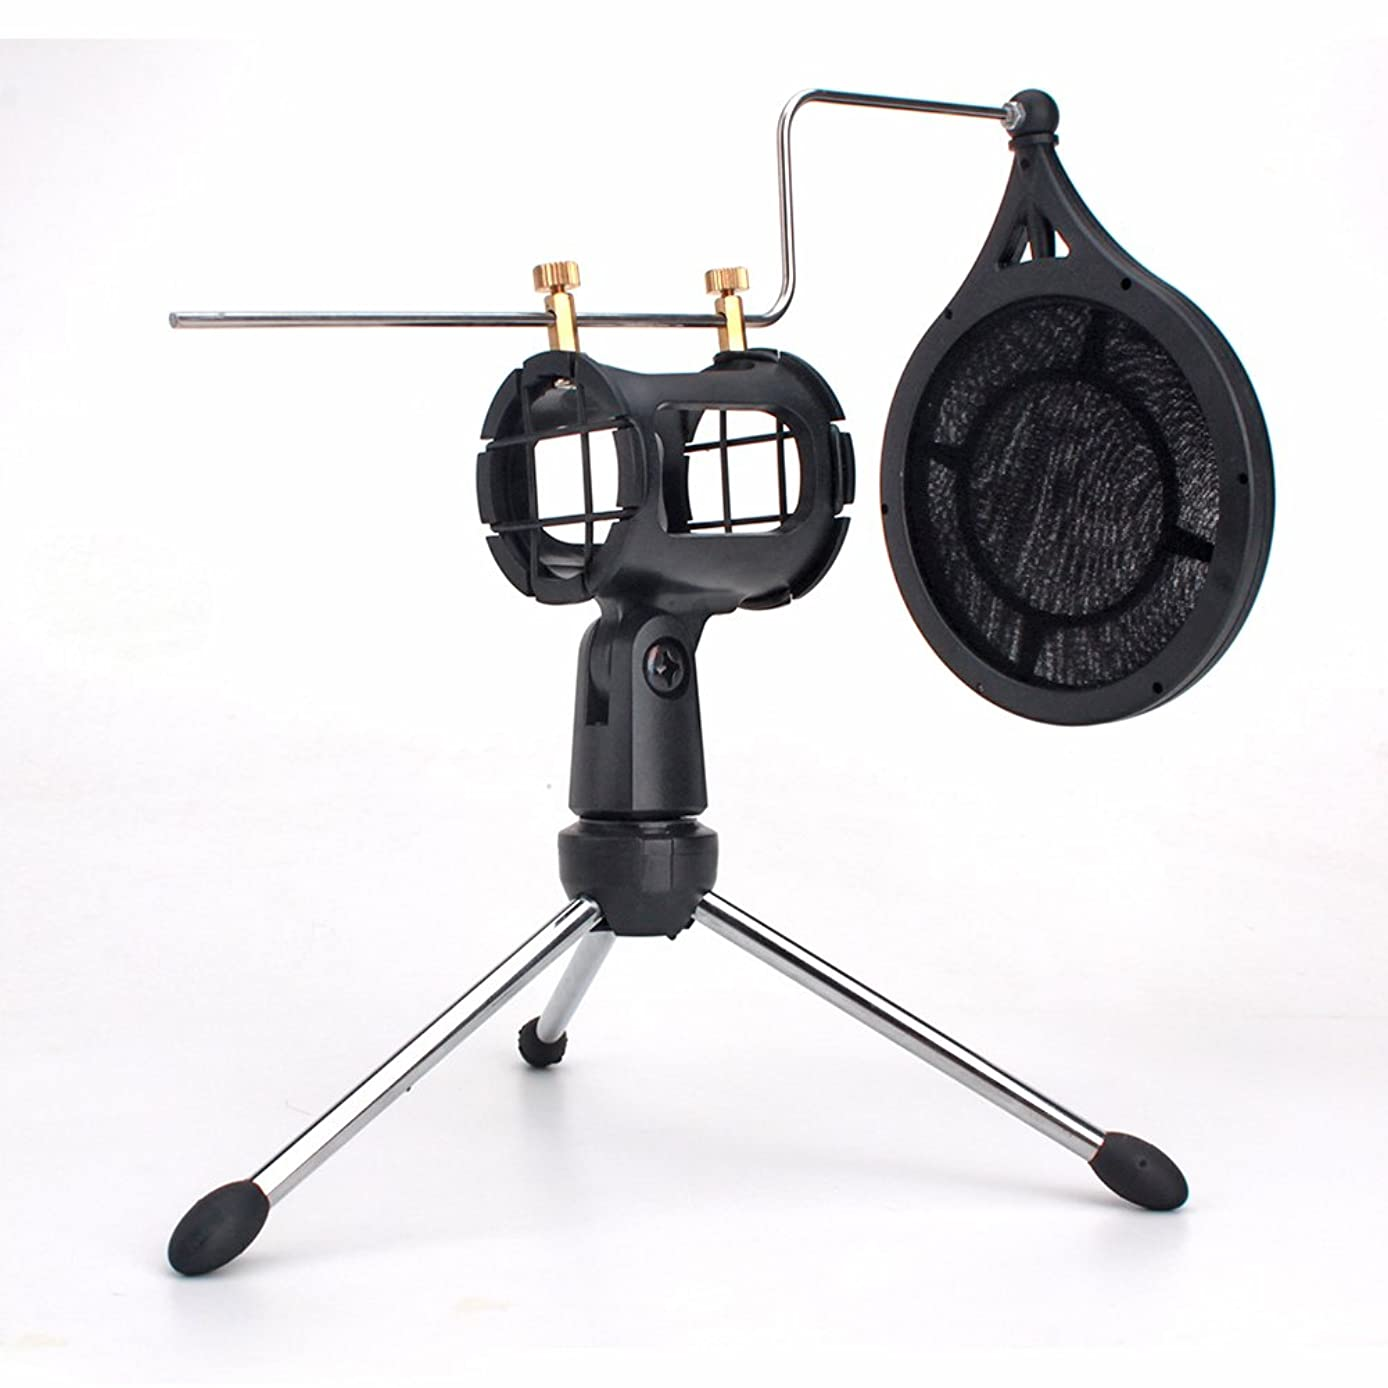 ZRAMO Small size Shock Mount with Pop Filter for Phone Condenser Microphone